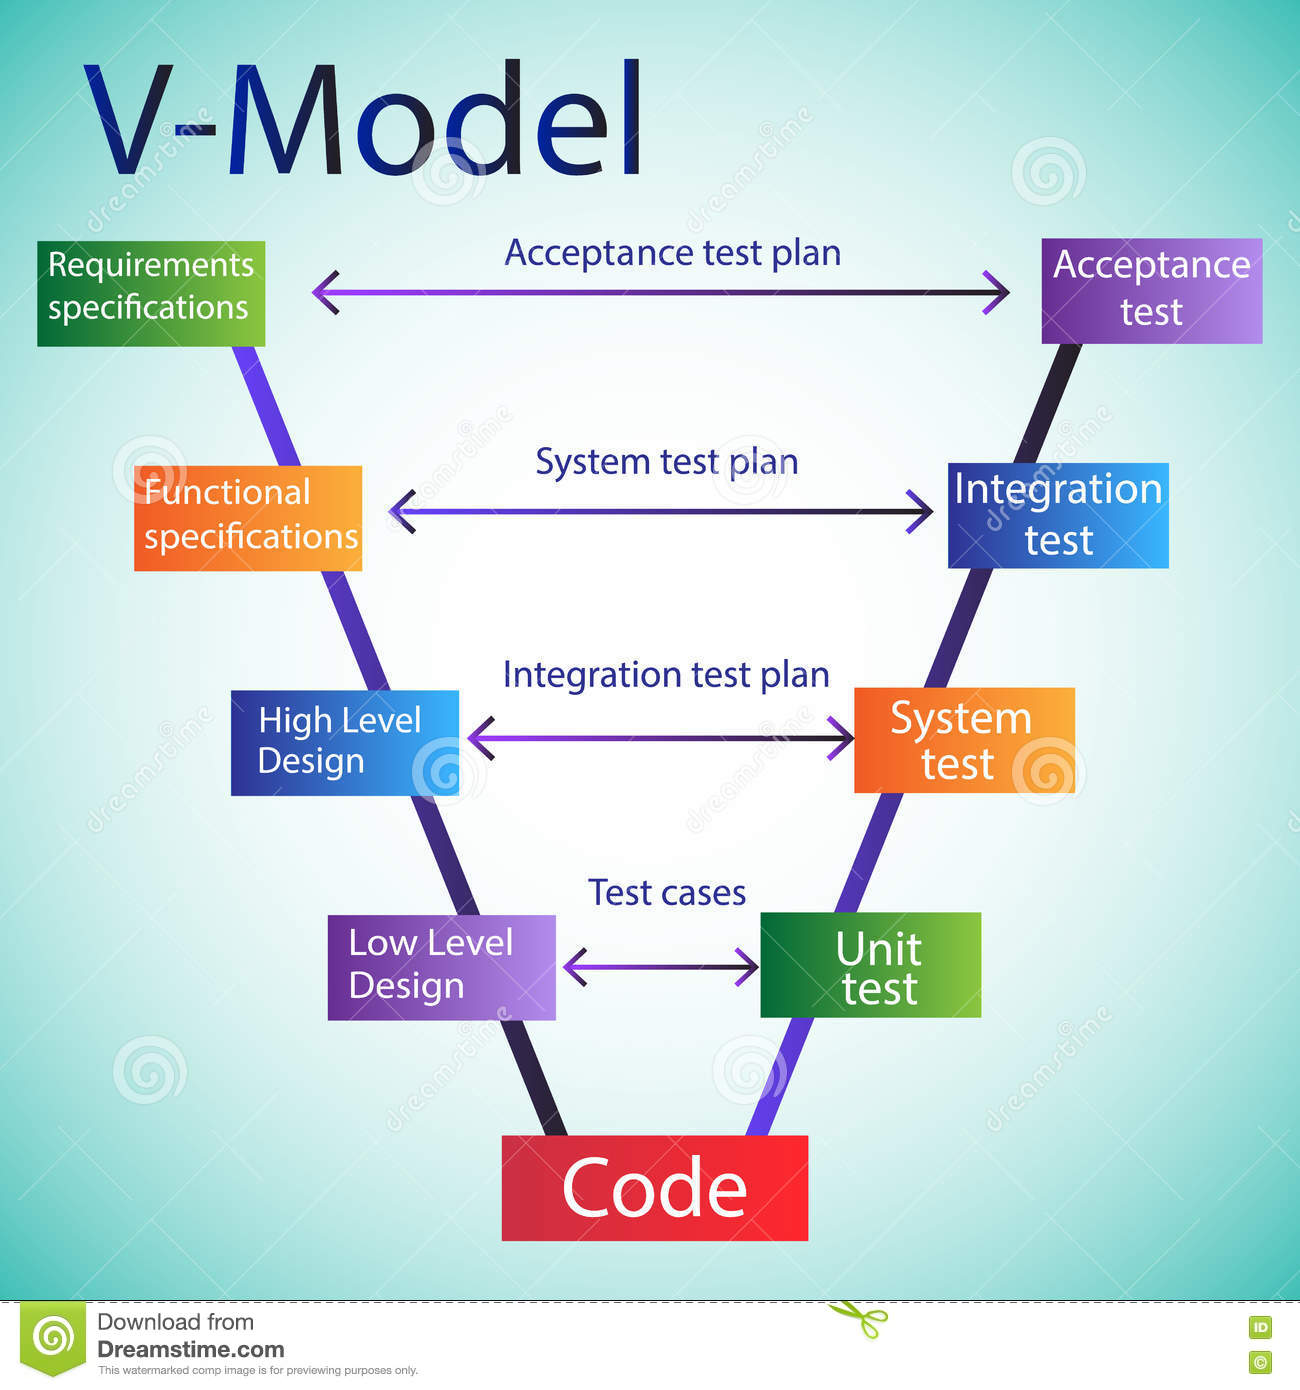 Design Cycle In The Development Phase For An Embedded System